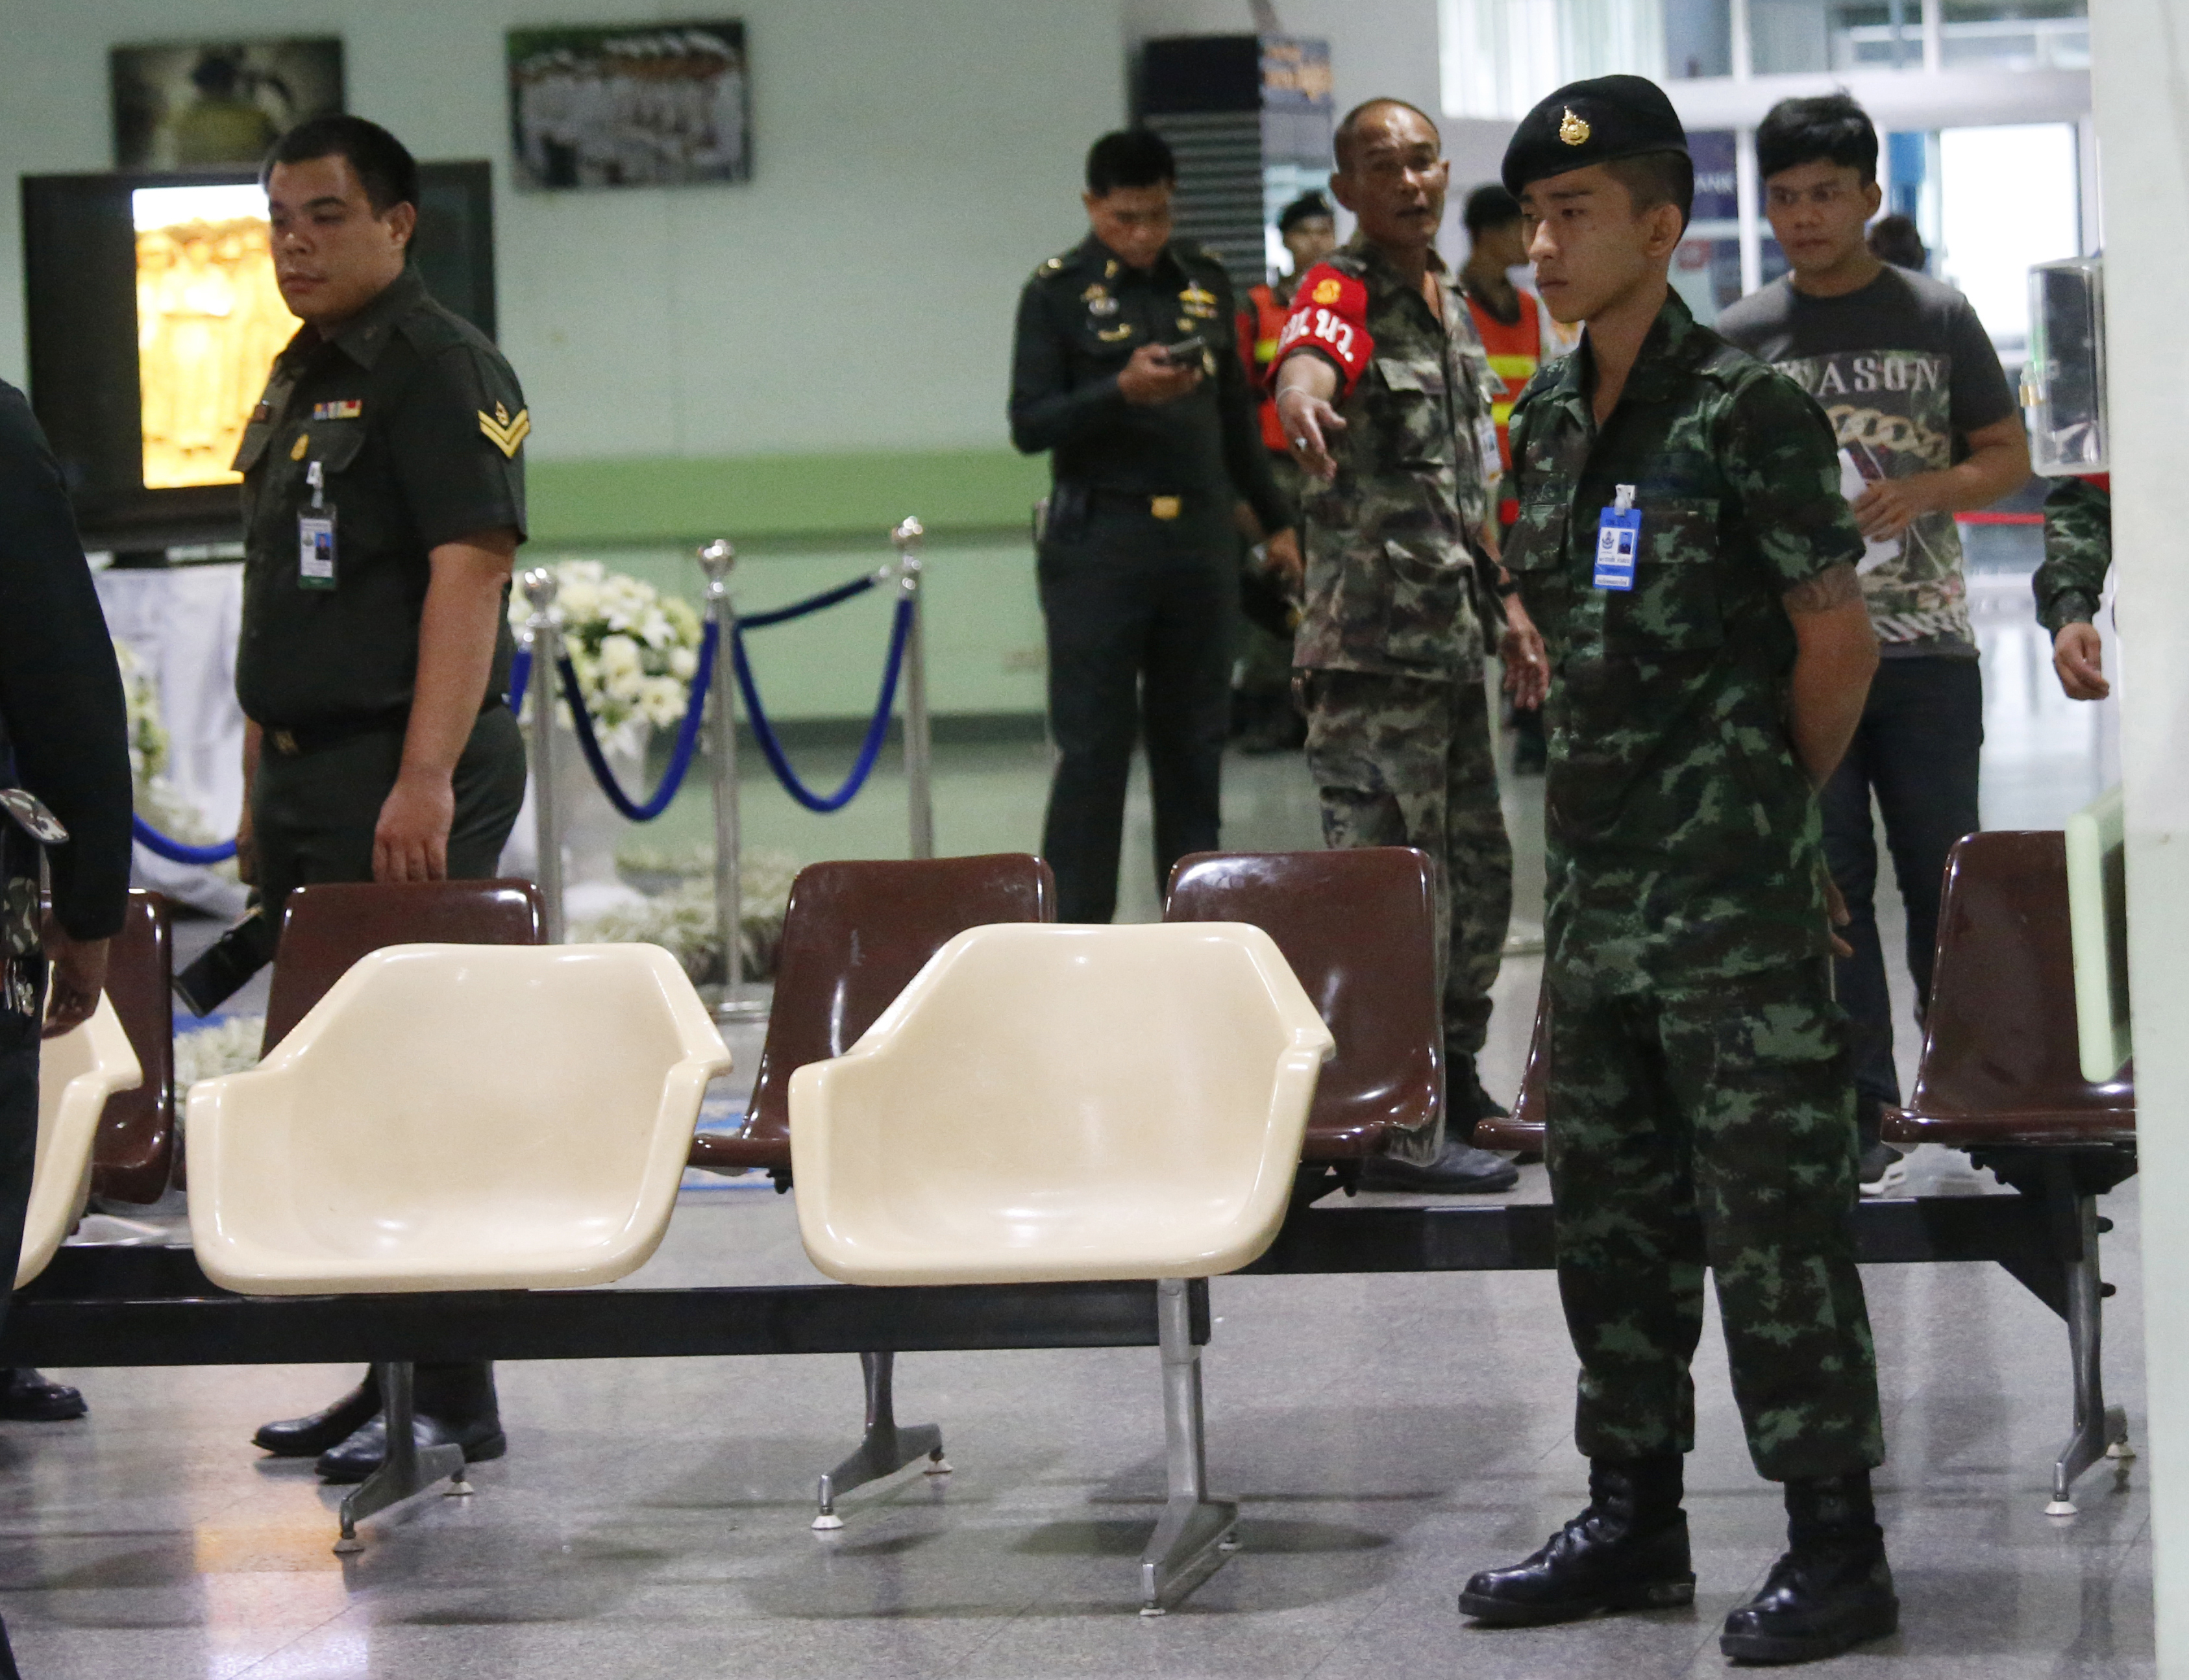 A Thai soldier stands guard as police officers investigate the lobby of Phramongkutklao Hospital, a military-owned hospital that is also open to civilians, in Bangkok after a bomb wounded more than 20 people, in Bangkok Monday, May 22, 2017.